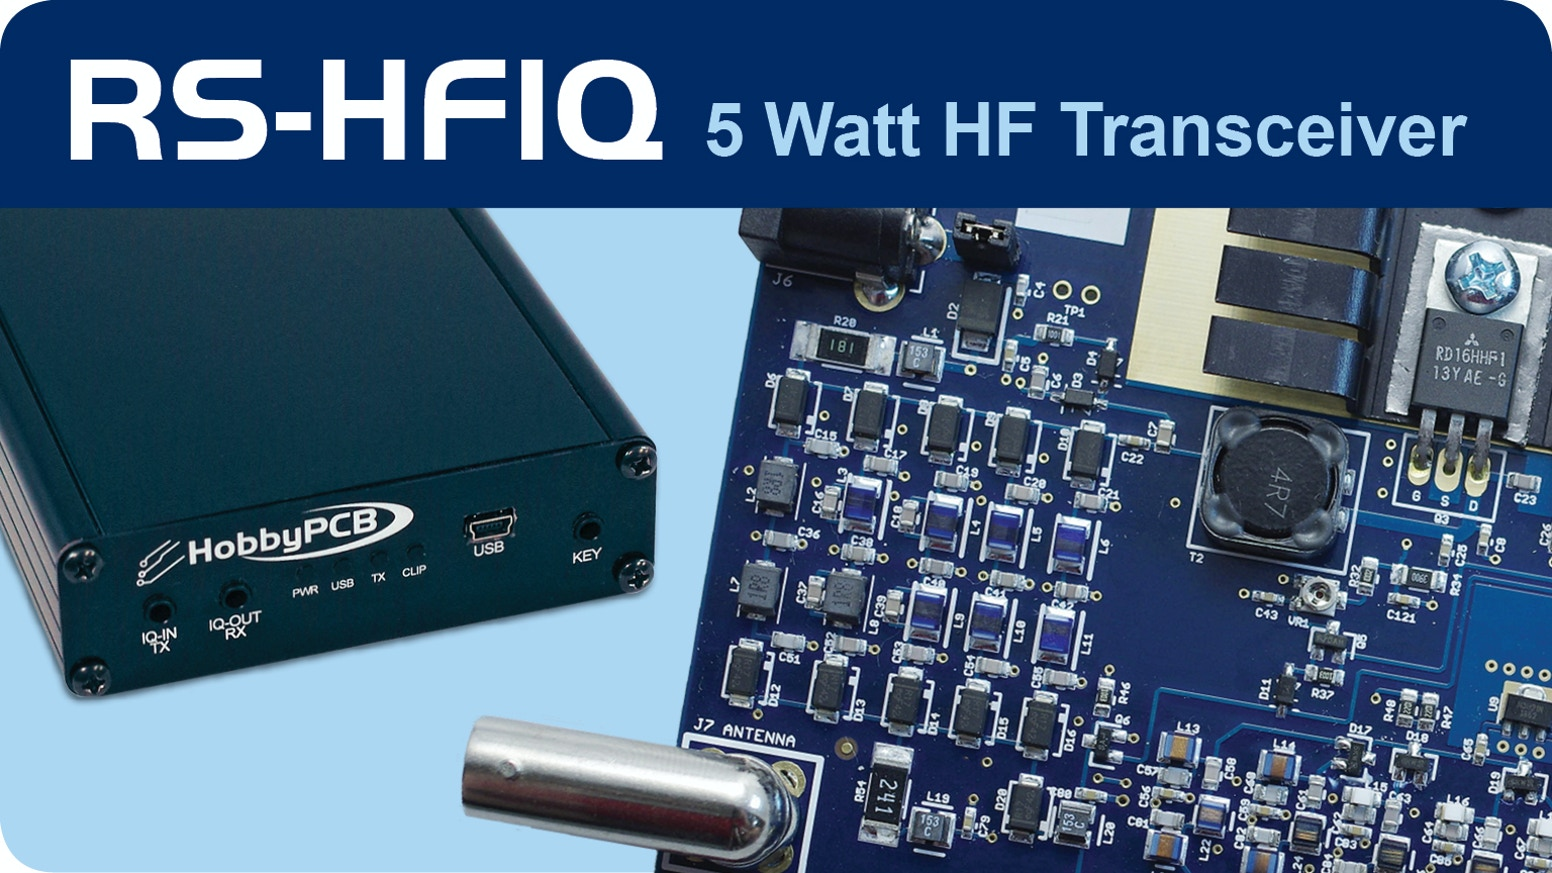 Rs Hfiq 5w Software Defined Radio Sdr Tranceiver By Hobbypcb Llc Am Receiver Simple Fm Circuit Pc The Is A High Performance Transceiver